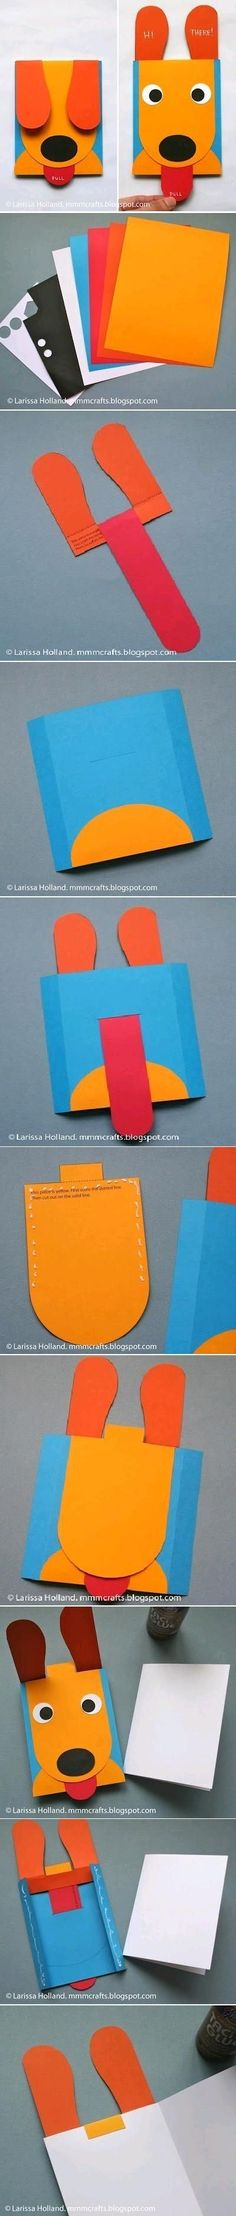 Pop up card